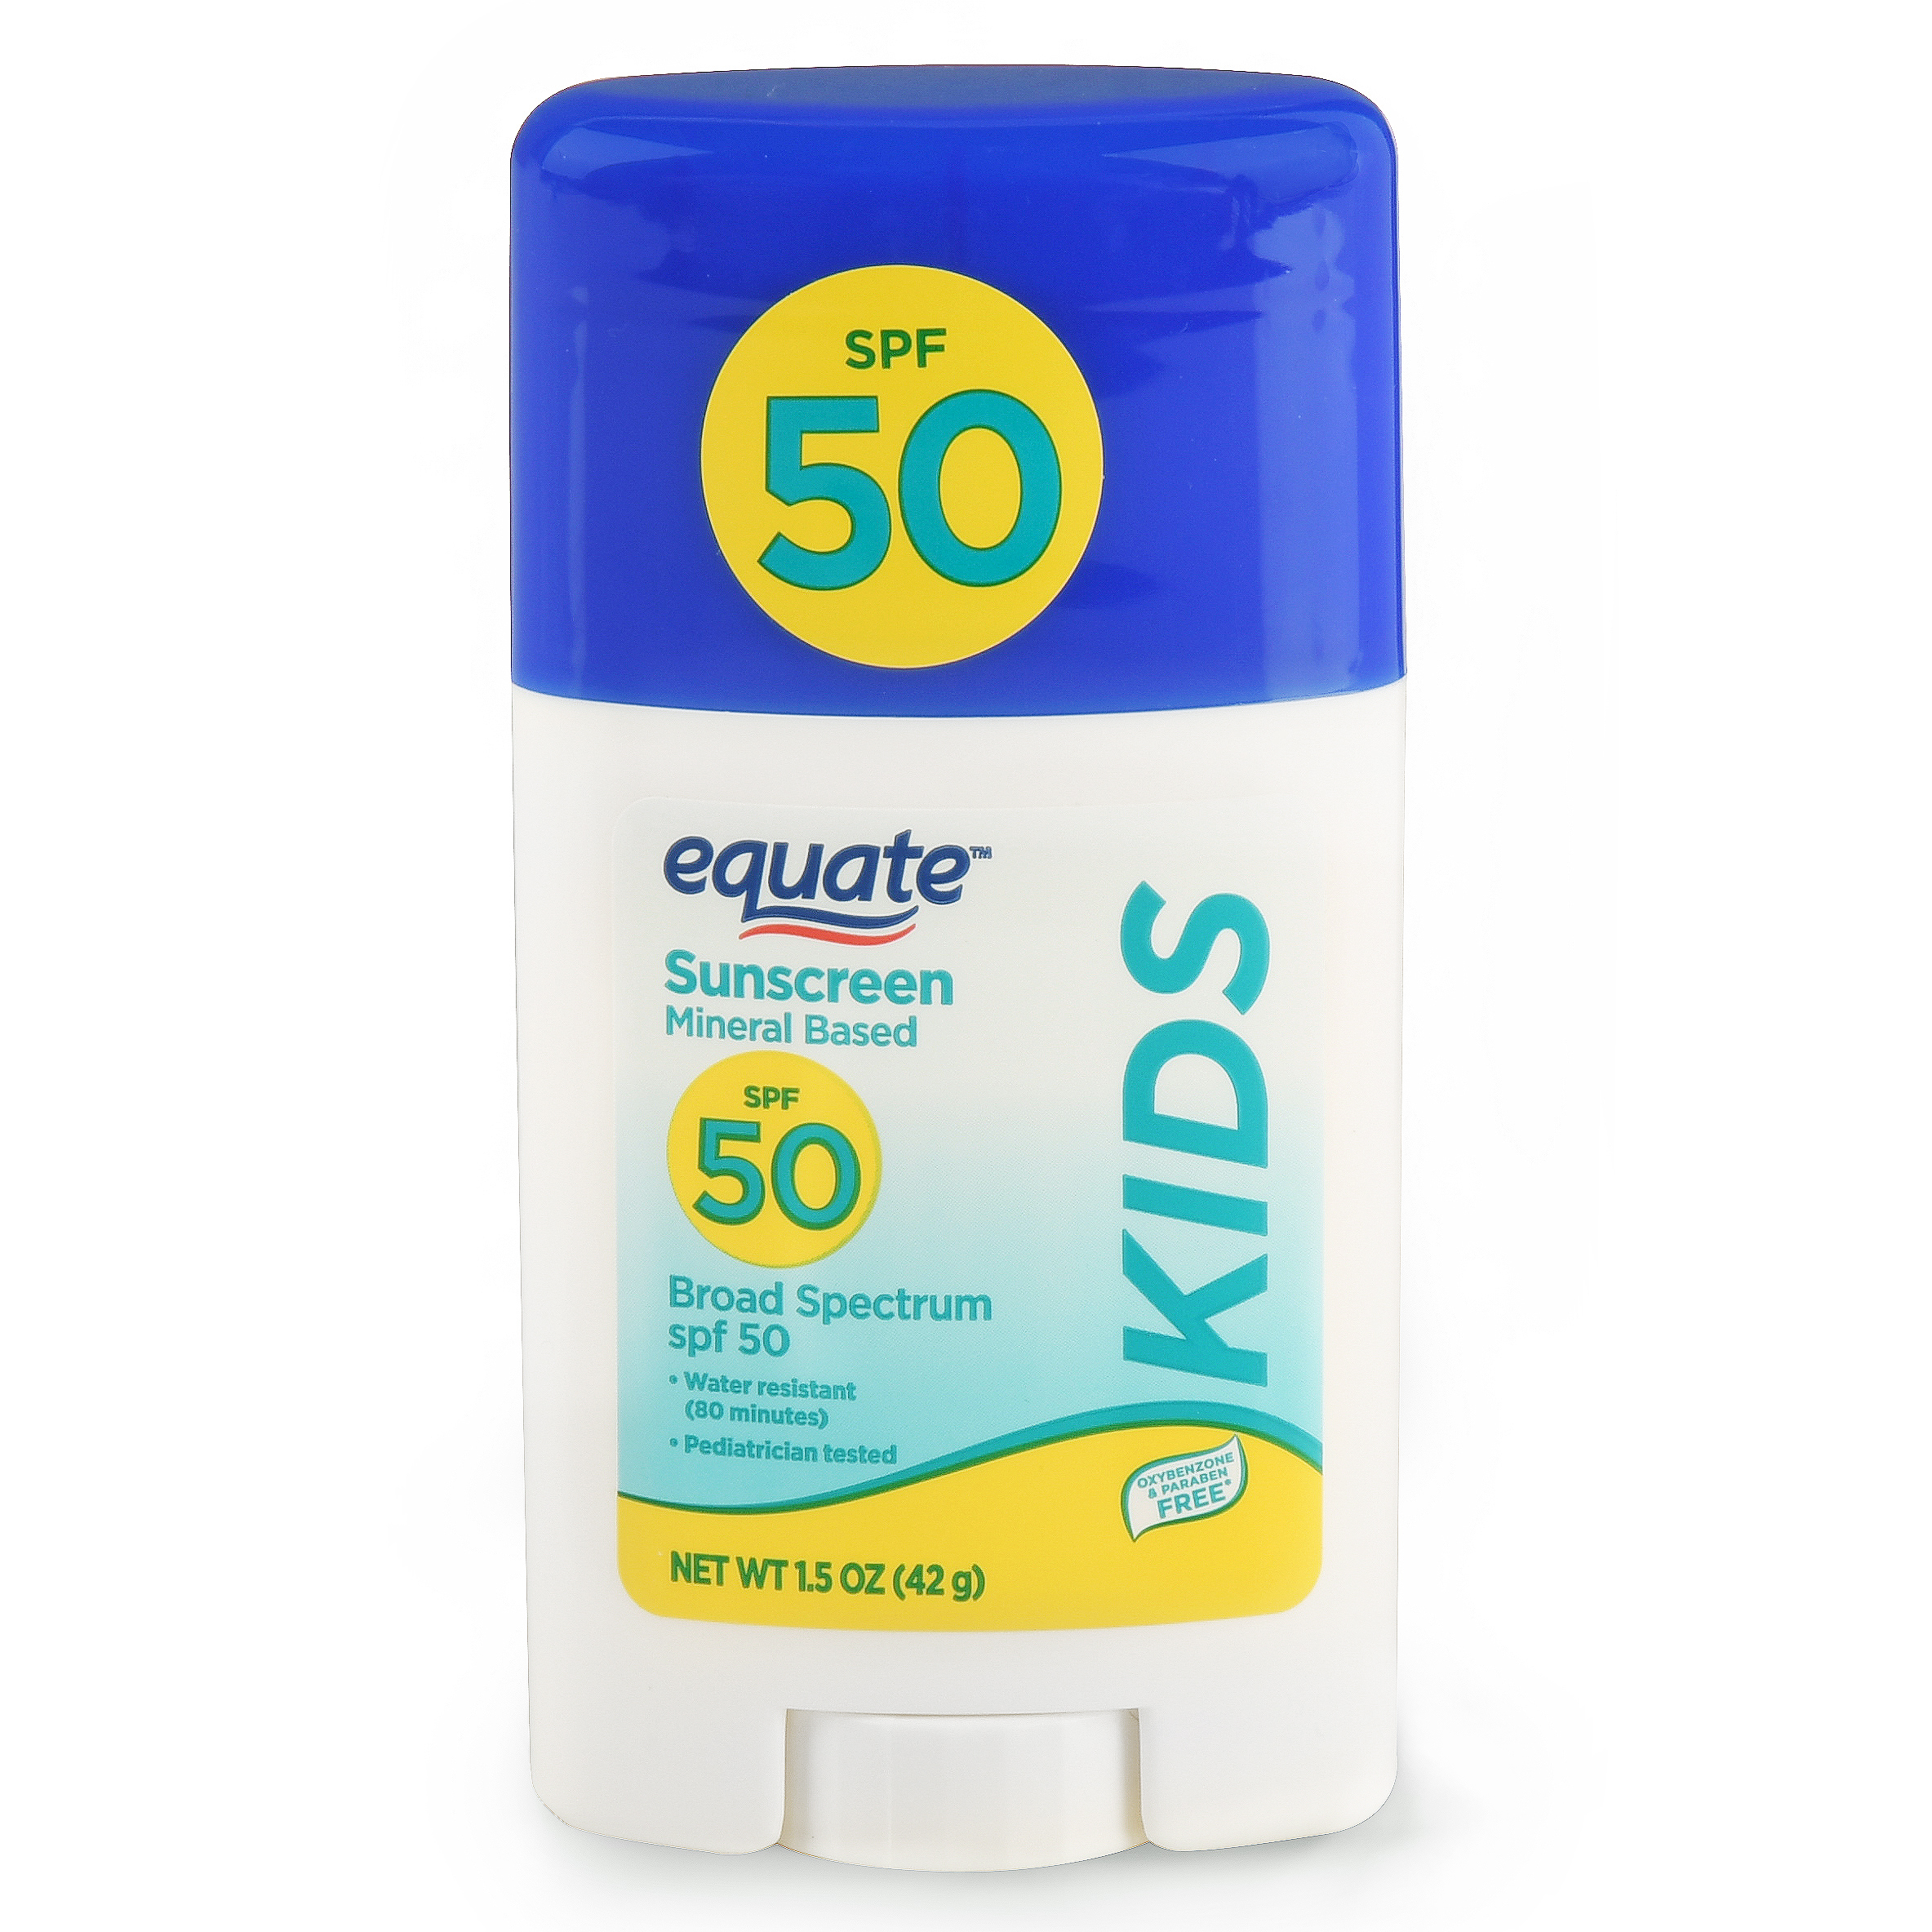 Equate Kids Mineral Based Sunscreen Stick, Broad Spectrum, SPF 50, 1.5 Oz